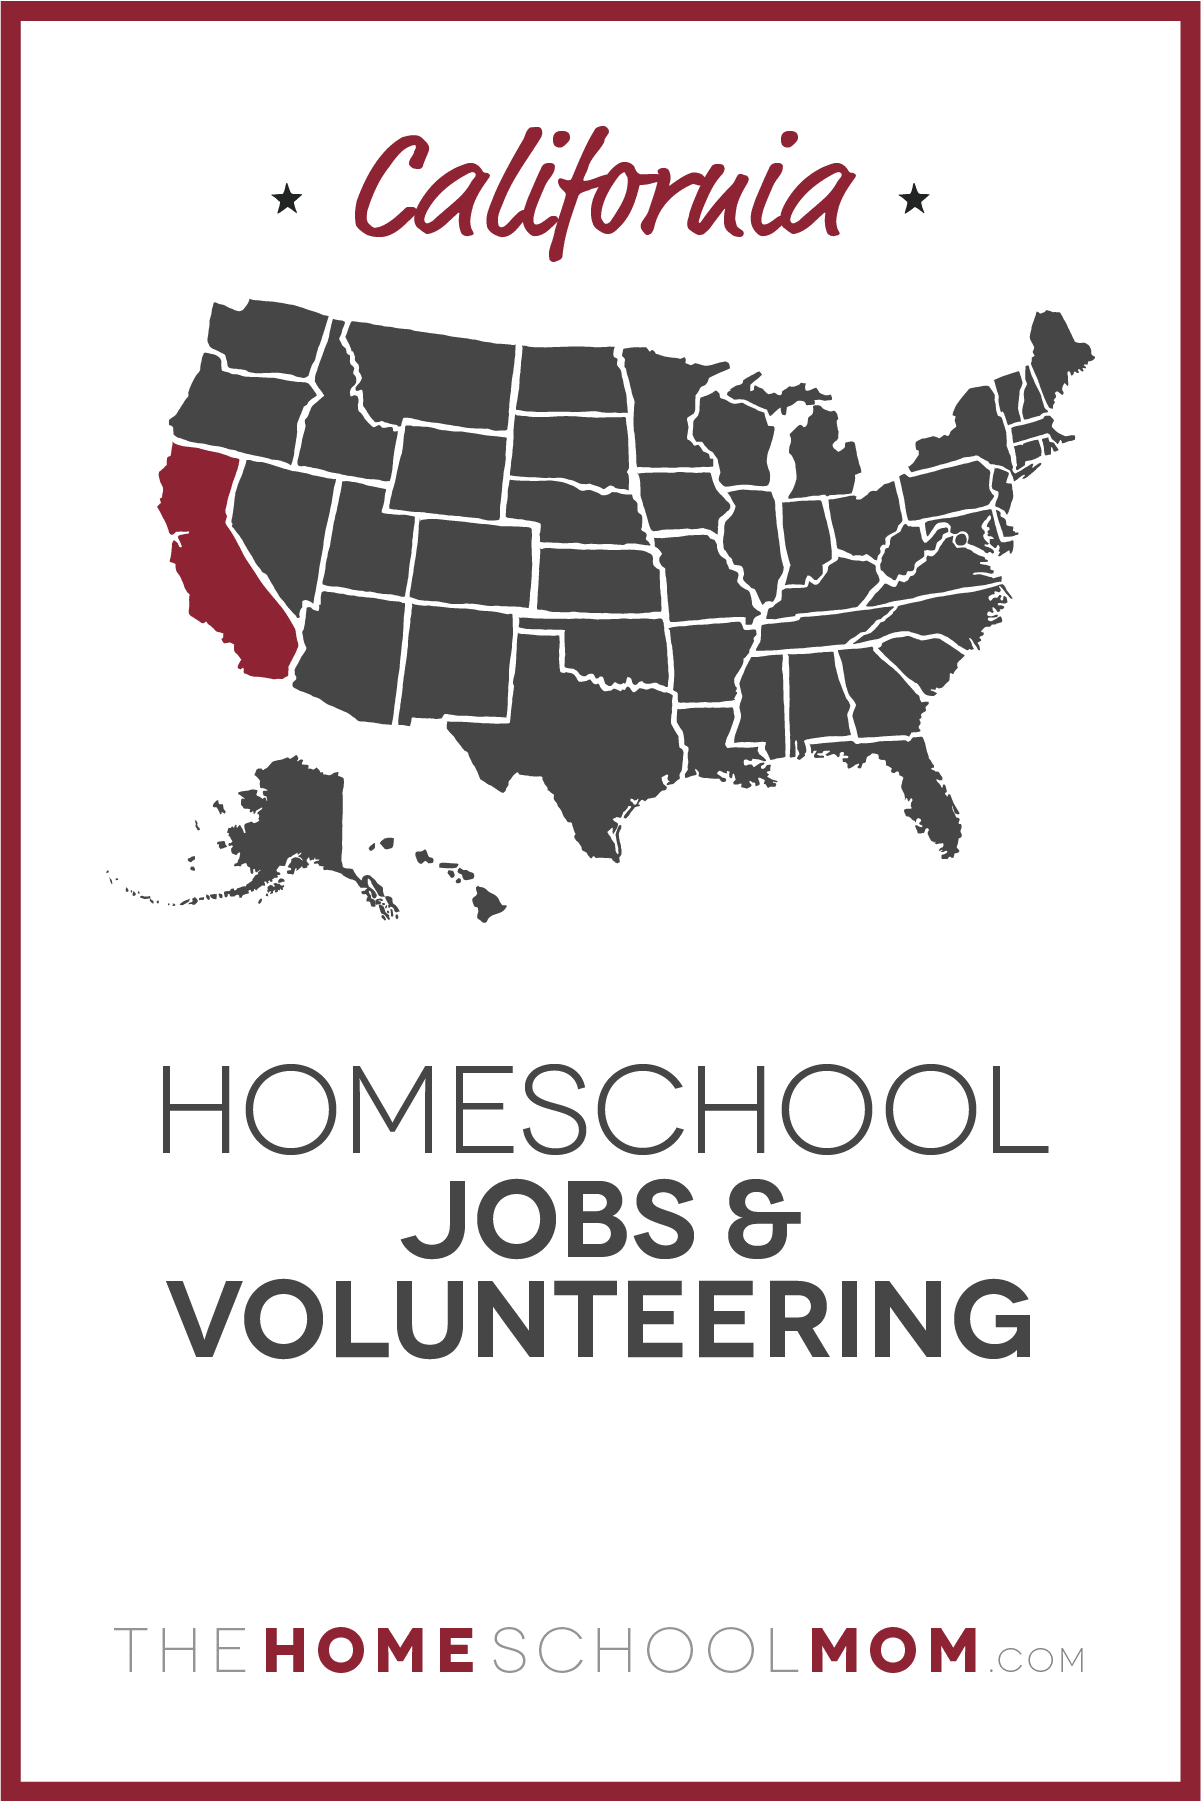 map of the US with California highlighted and text California Homeschool jobs & volunteering